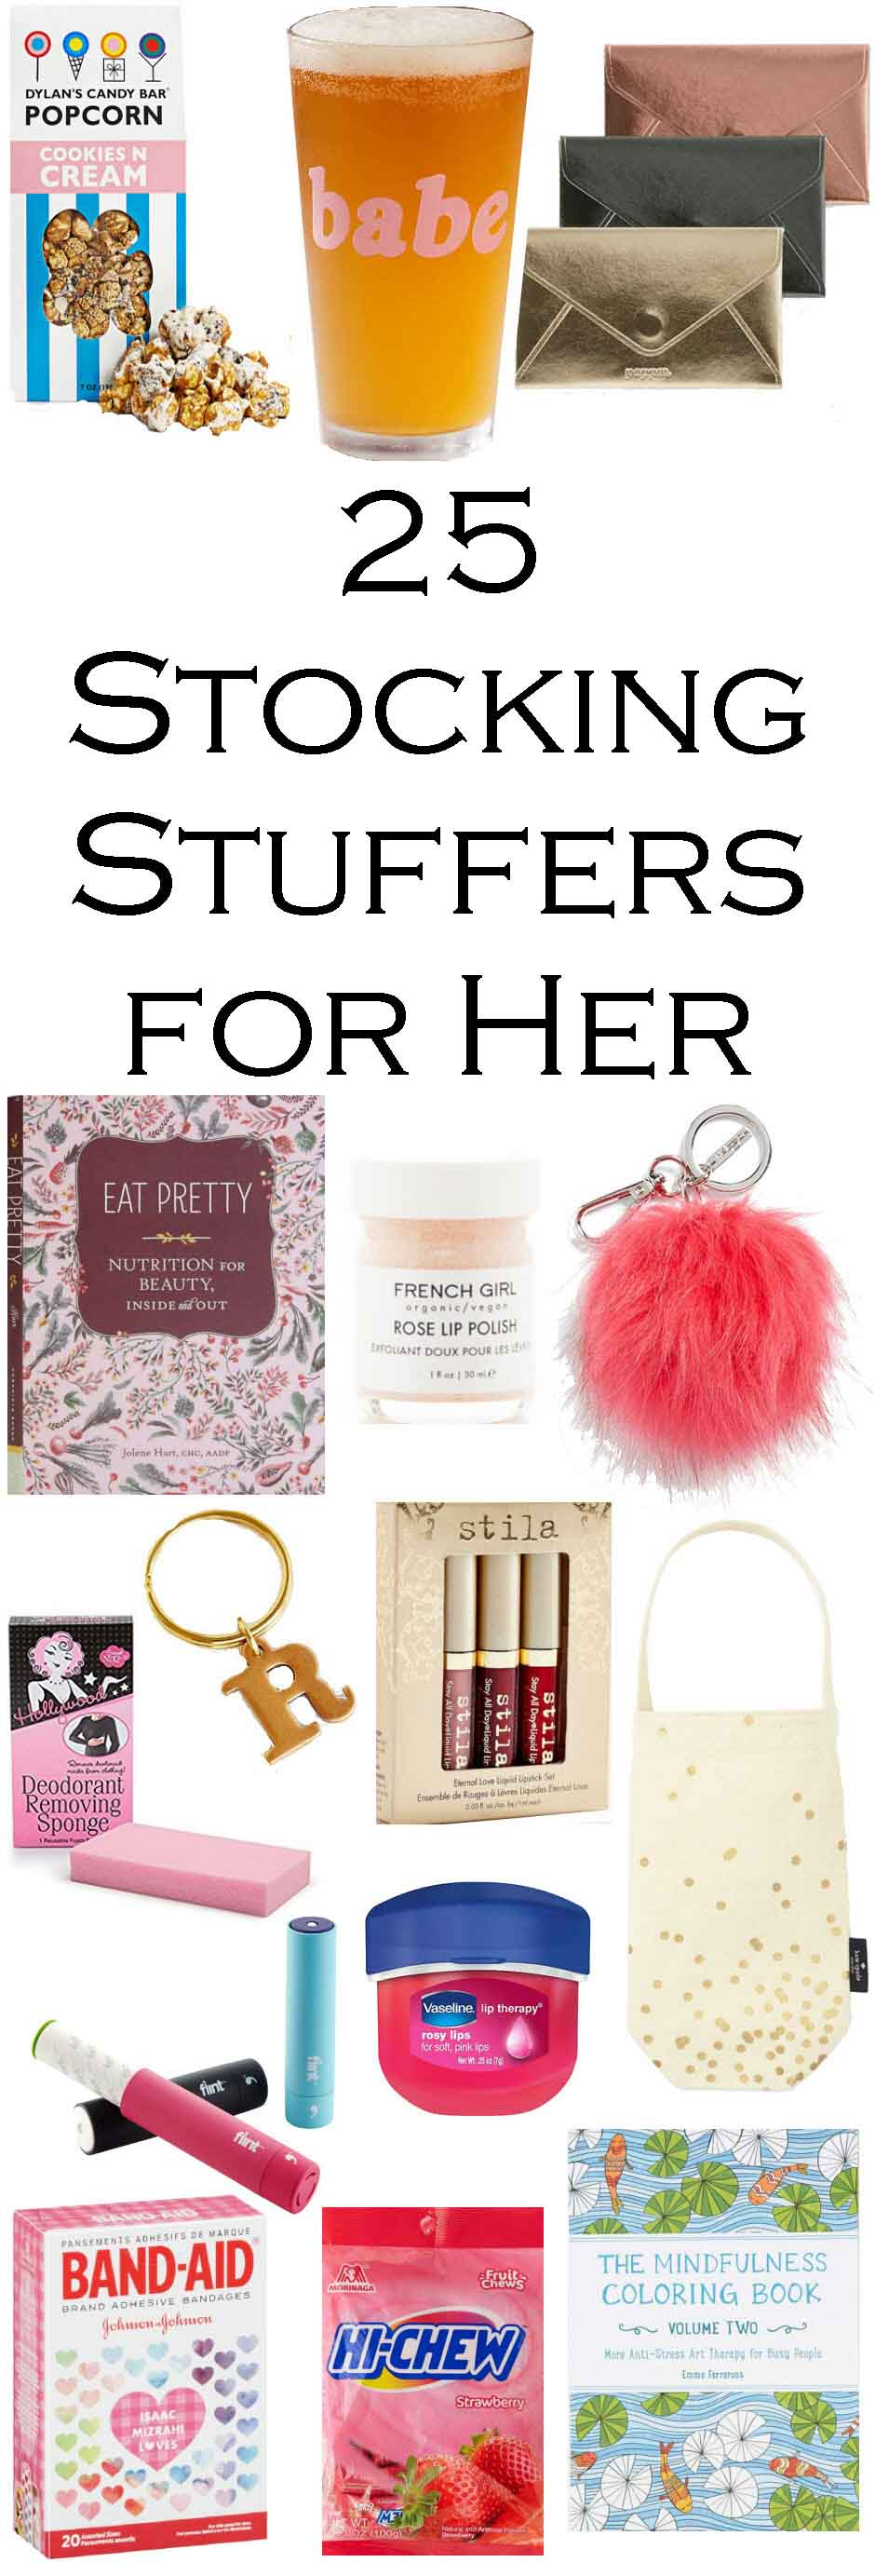 Christmas Stocking Stuffer Ideas For Her Gift Guide Luci